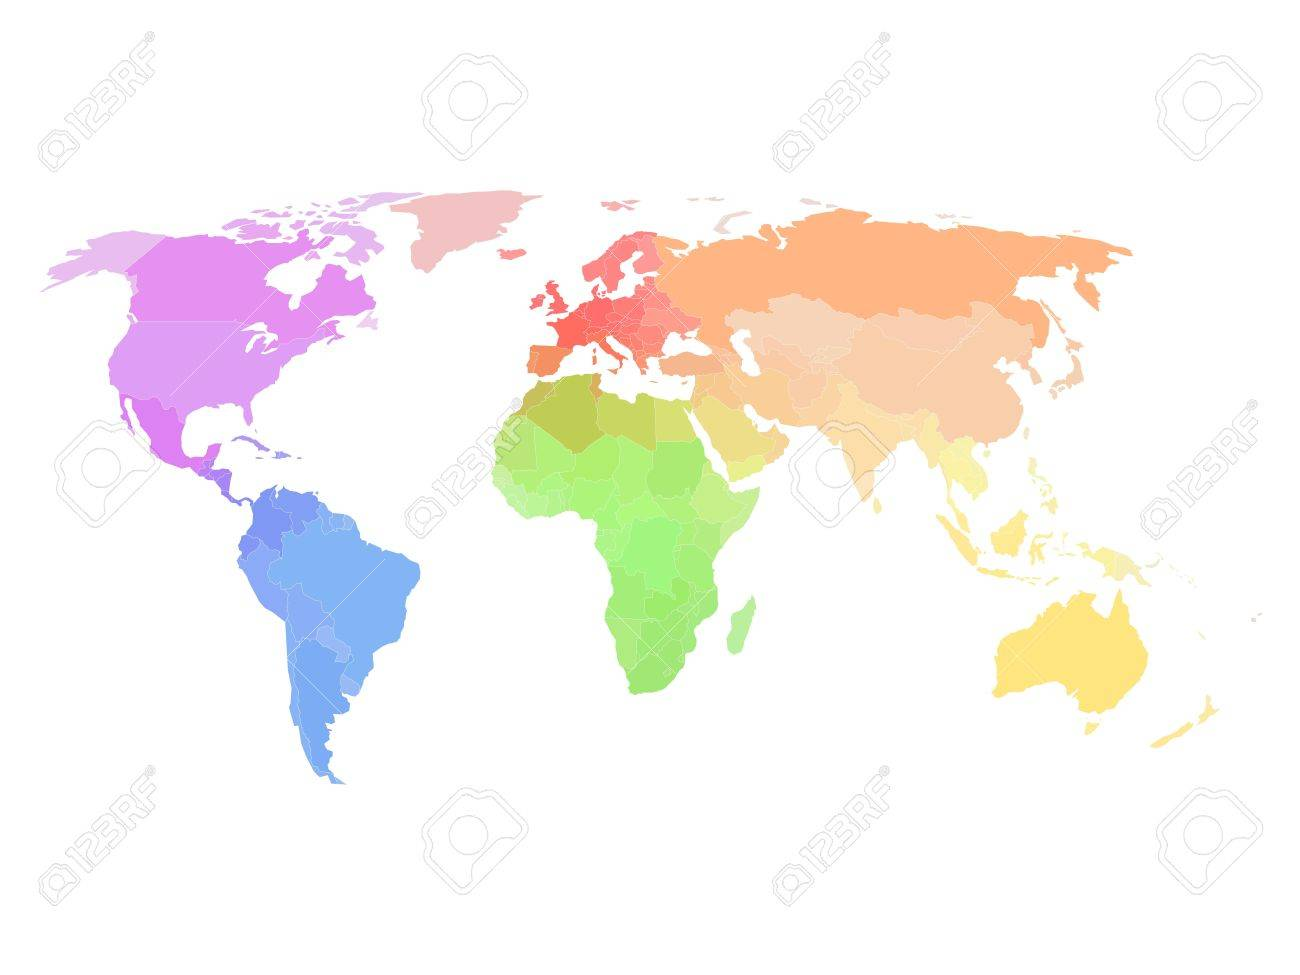 Colored political world map different colors for each continent colored political world map different colors for each continent stock vector 53888750 gumiabroncs Images